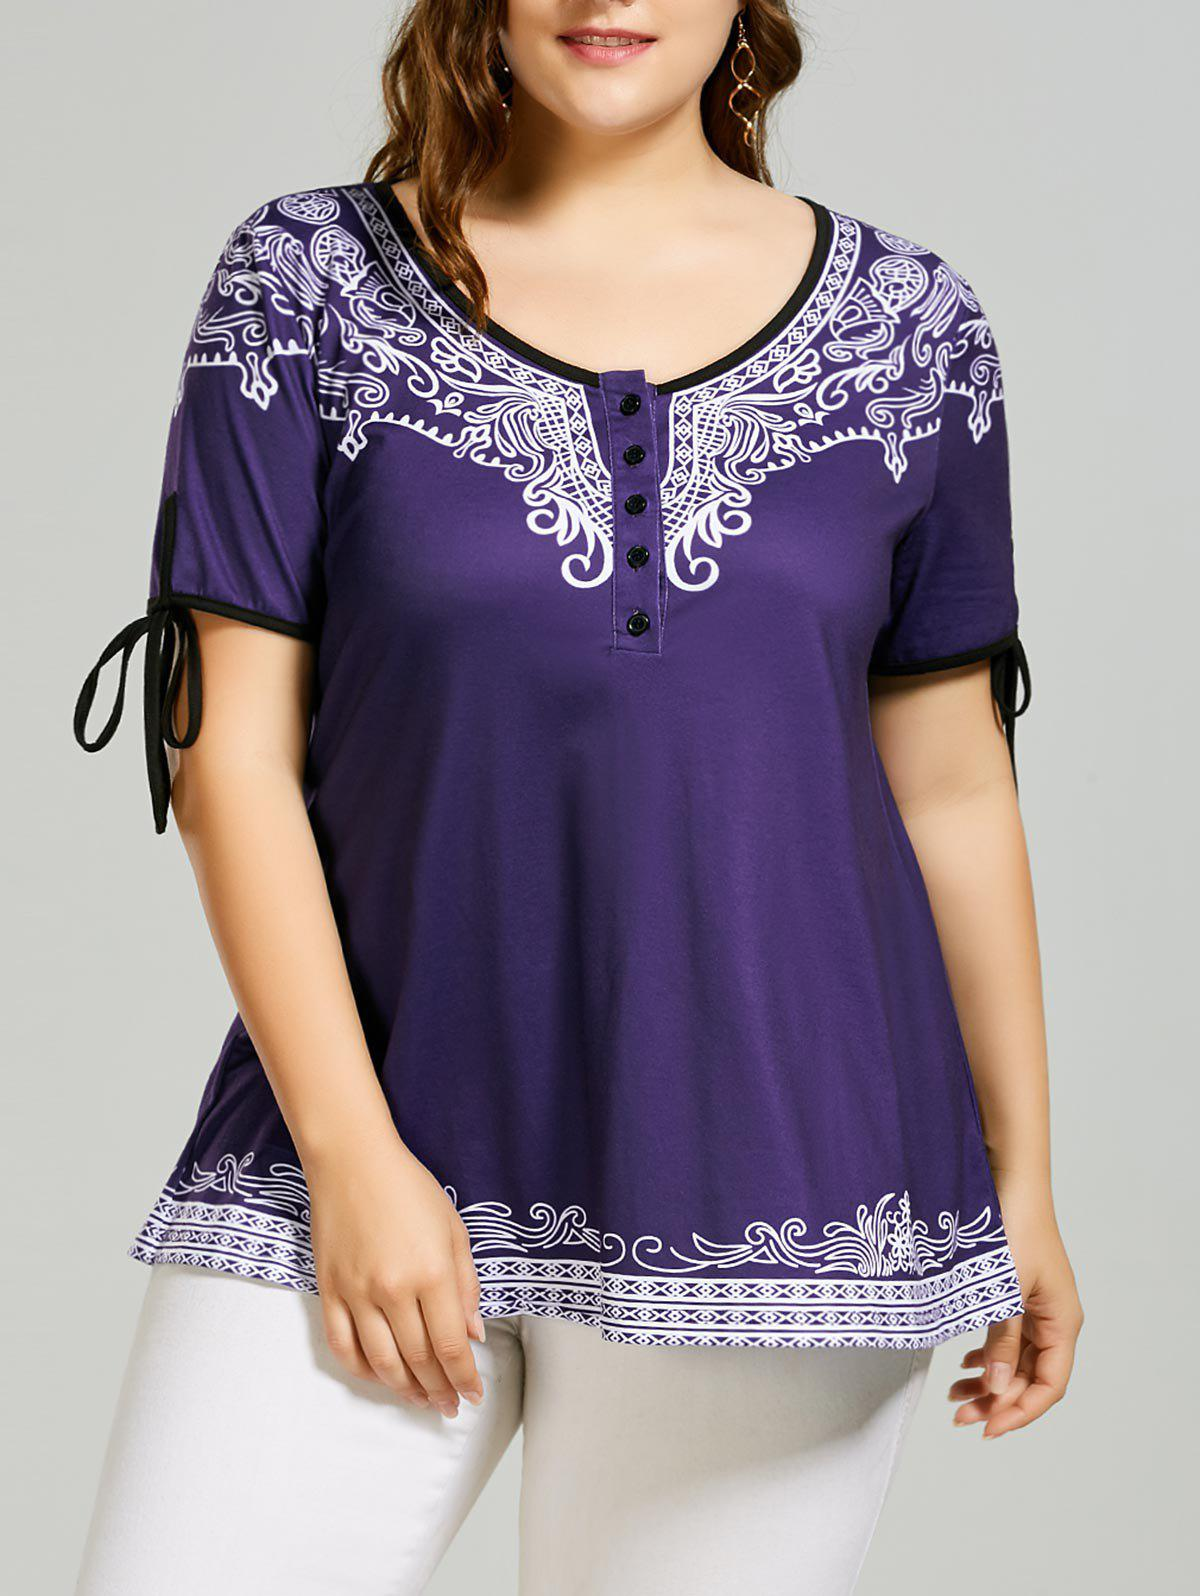 Scoop Neck Self Tie Printed T-shirt - BLUE VIOLET 4XL